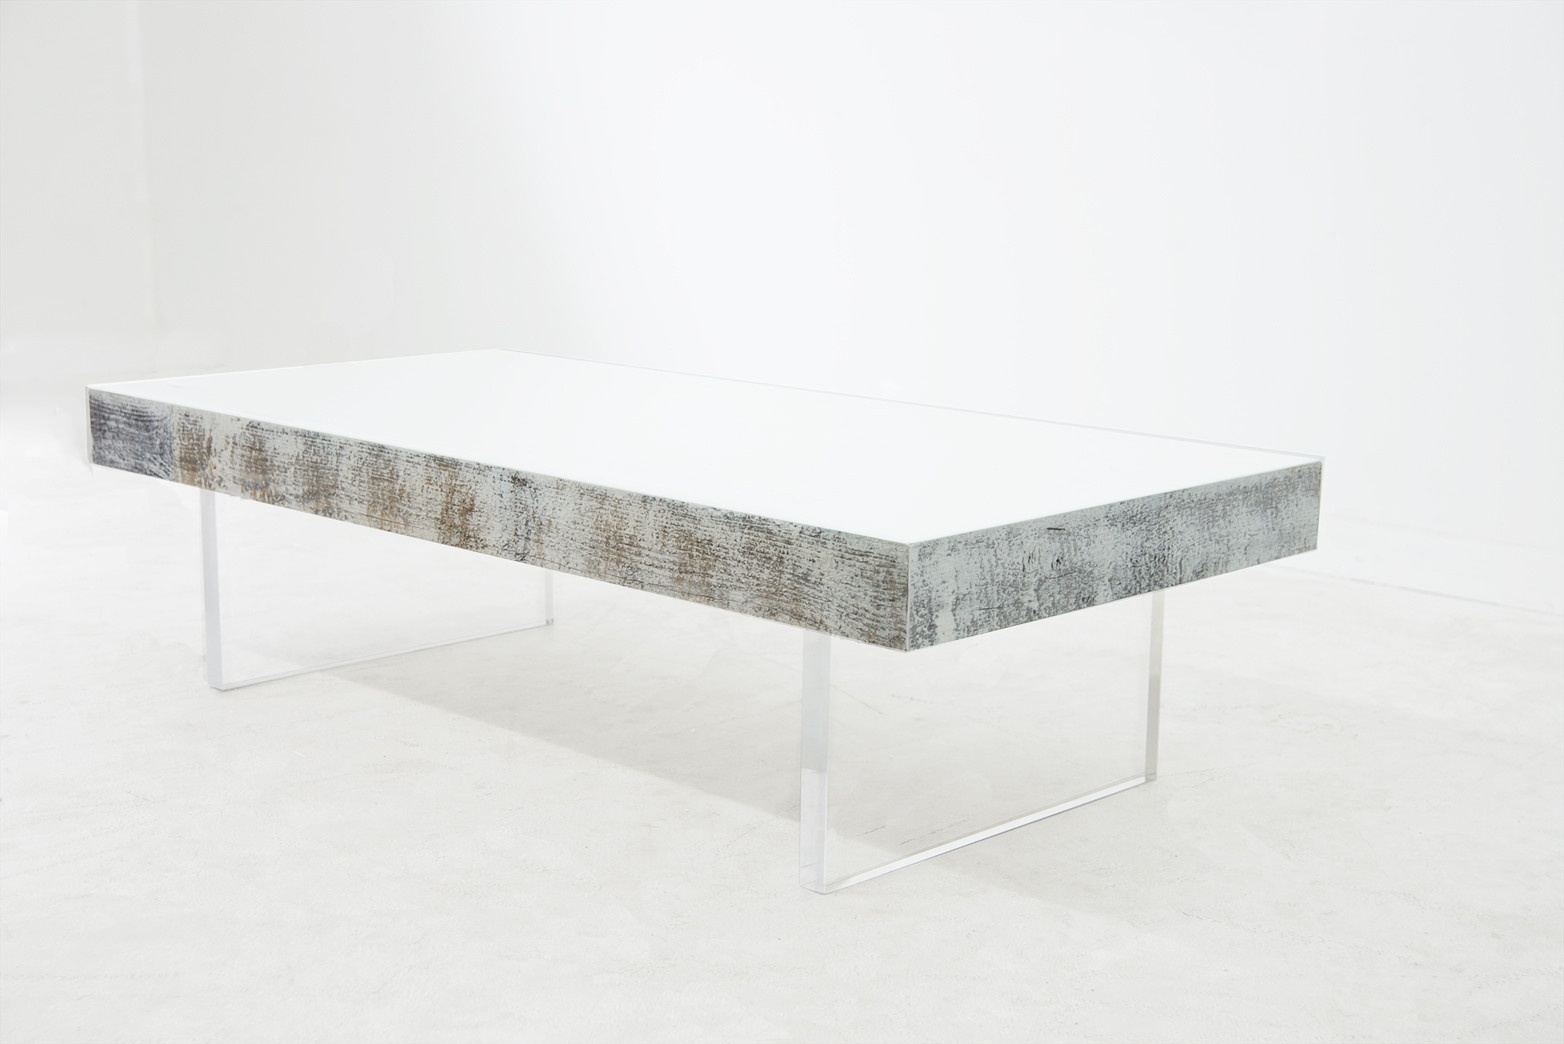 Acrylic Coffee Table #47490 | Forazhouse pertaining to Peekaboo Acrylic Tall Coffee Tables (Image 11 of 30)